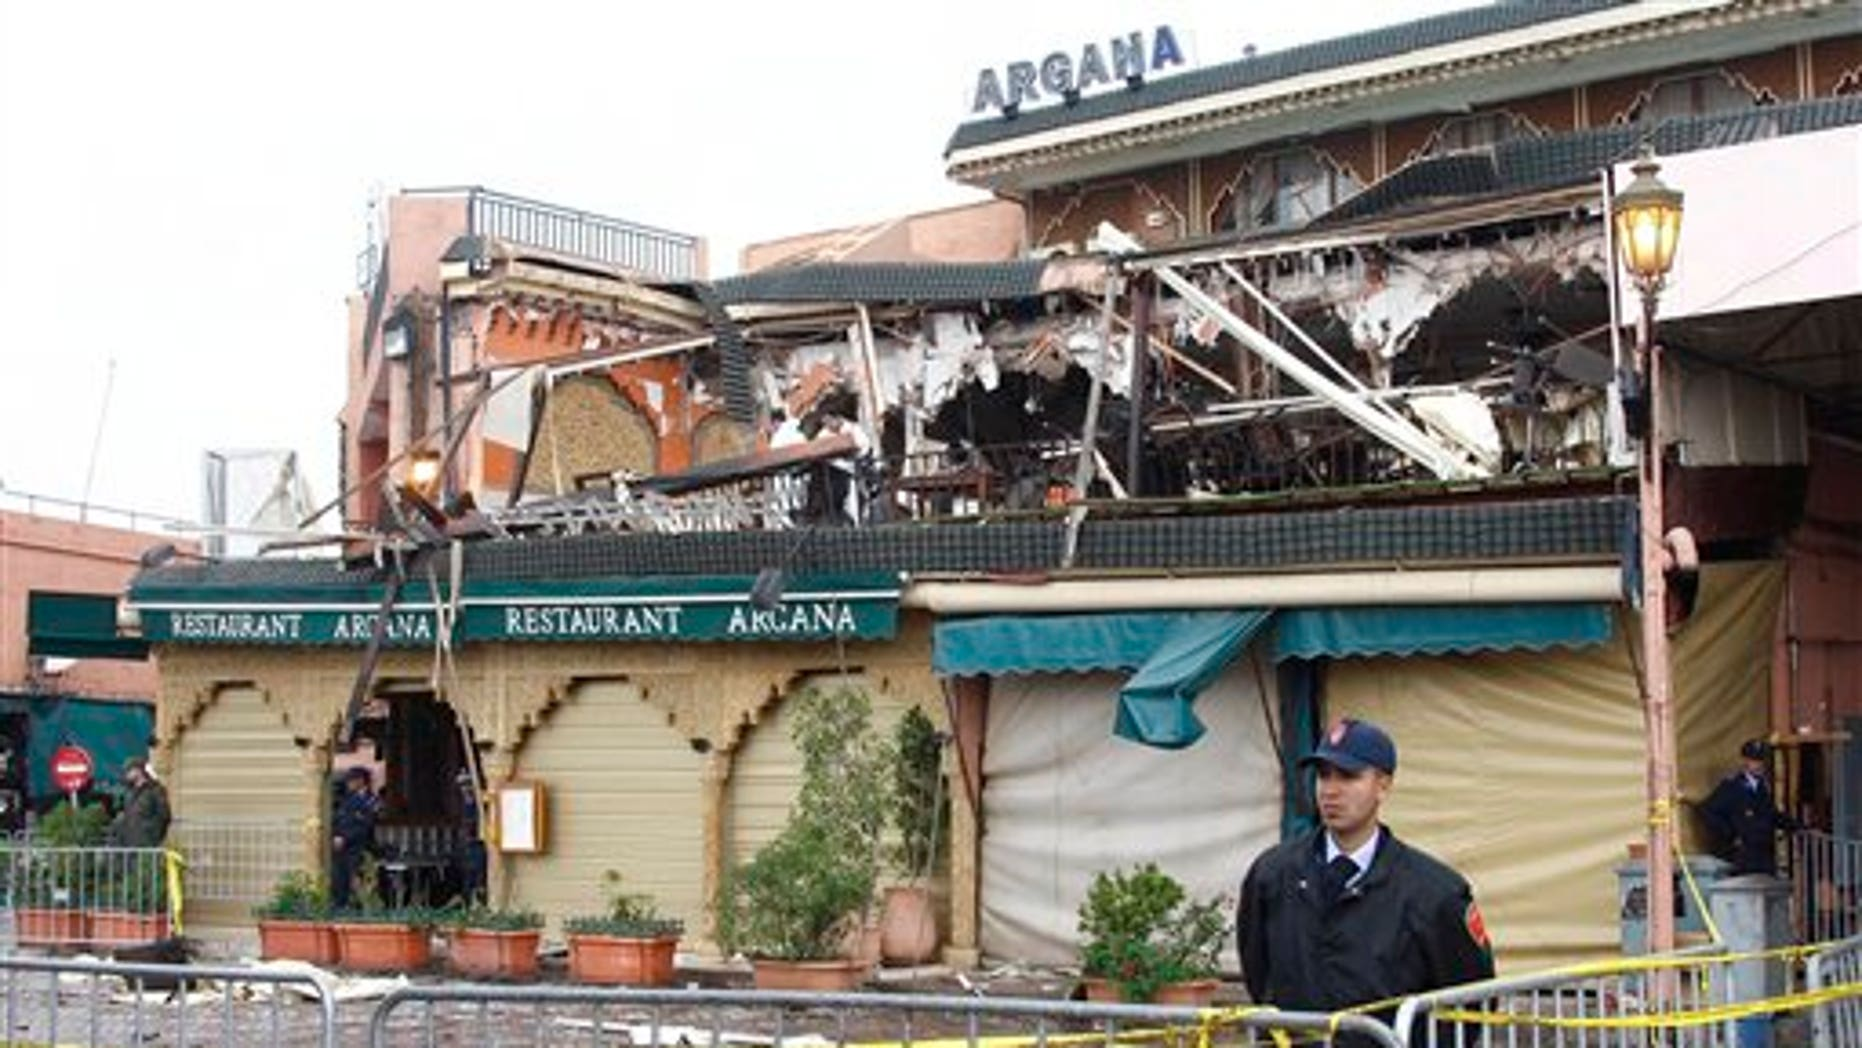 April 28: Police guard a damaged building after an explosion Thursday ripped through a cafe popular among foreign tourists in Marrakech, Morocco. The international police agency Interpol called the attack on a crowded tourist cafe in Marrakech a suspected suicide bombing Friday, as the government said two Canadians, two French citizens, a Dutchman and two Moroccans were among the 15 killed in the explosion. (AP)